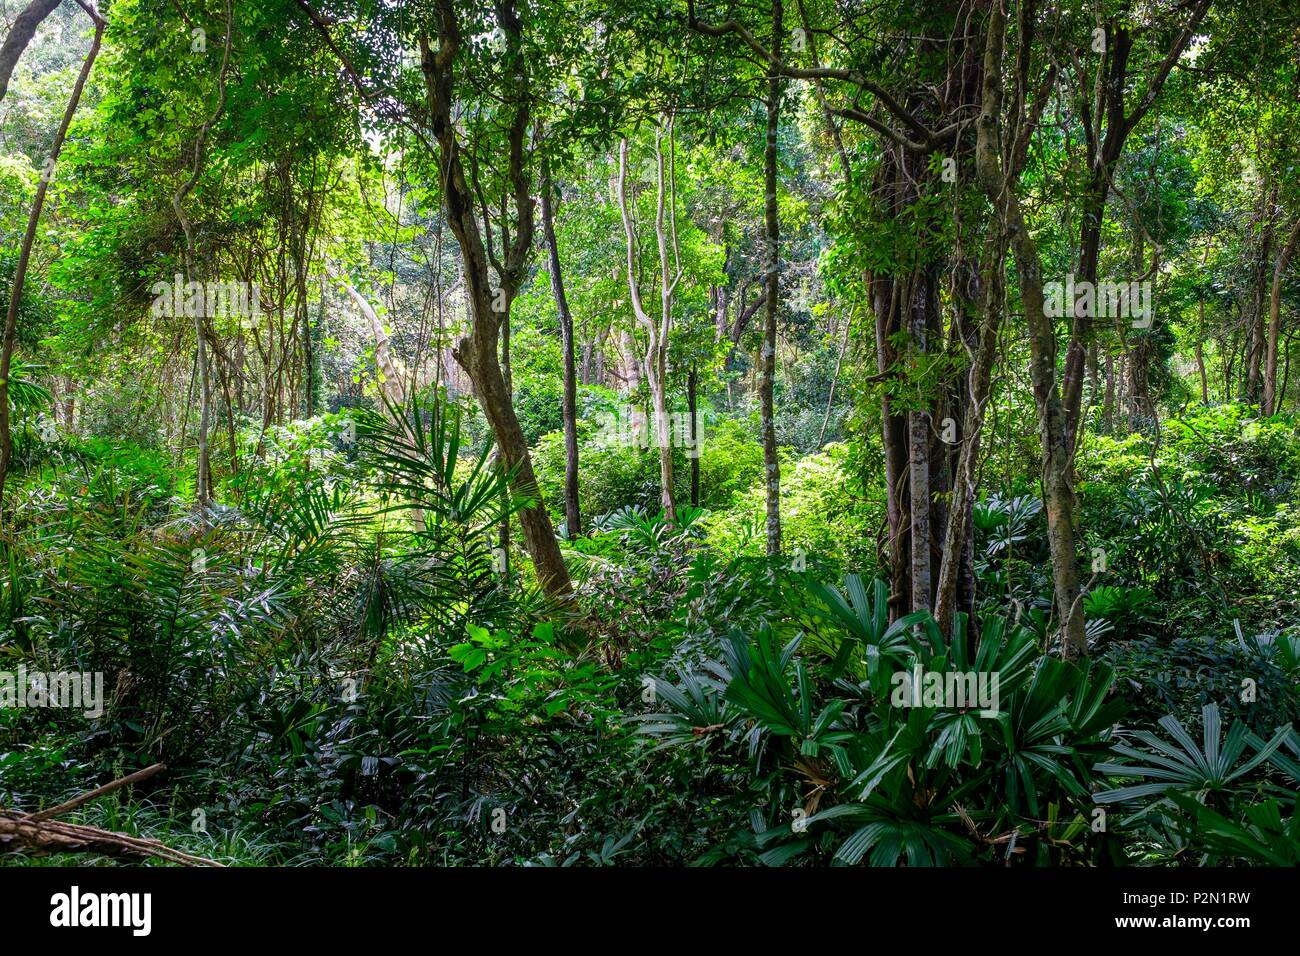 Thailand, Trang province, Ko Libong island, forest behind Tung Yaka beach west side of the island - Stock Image